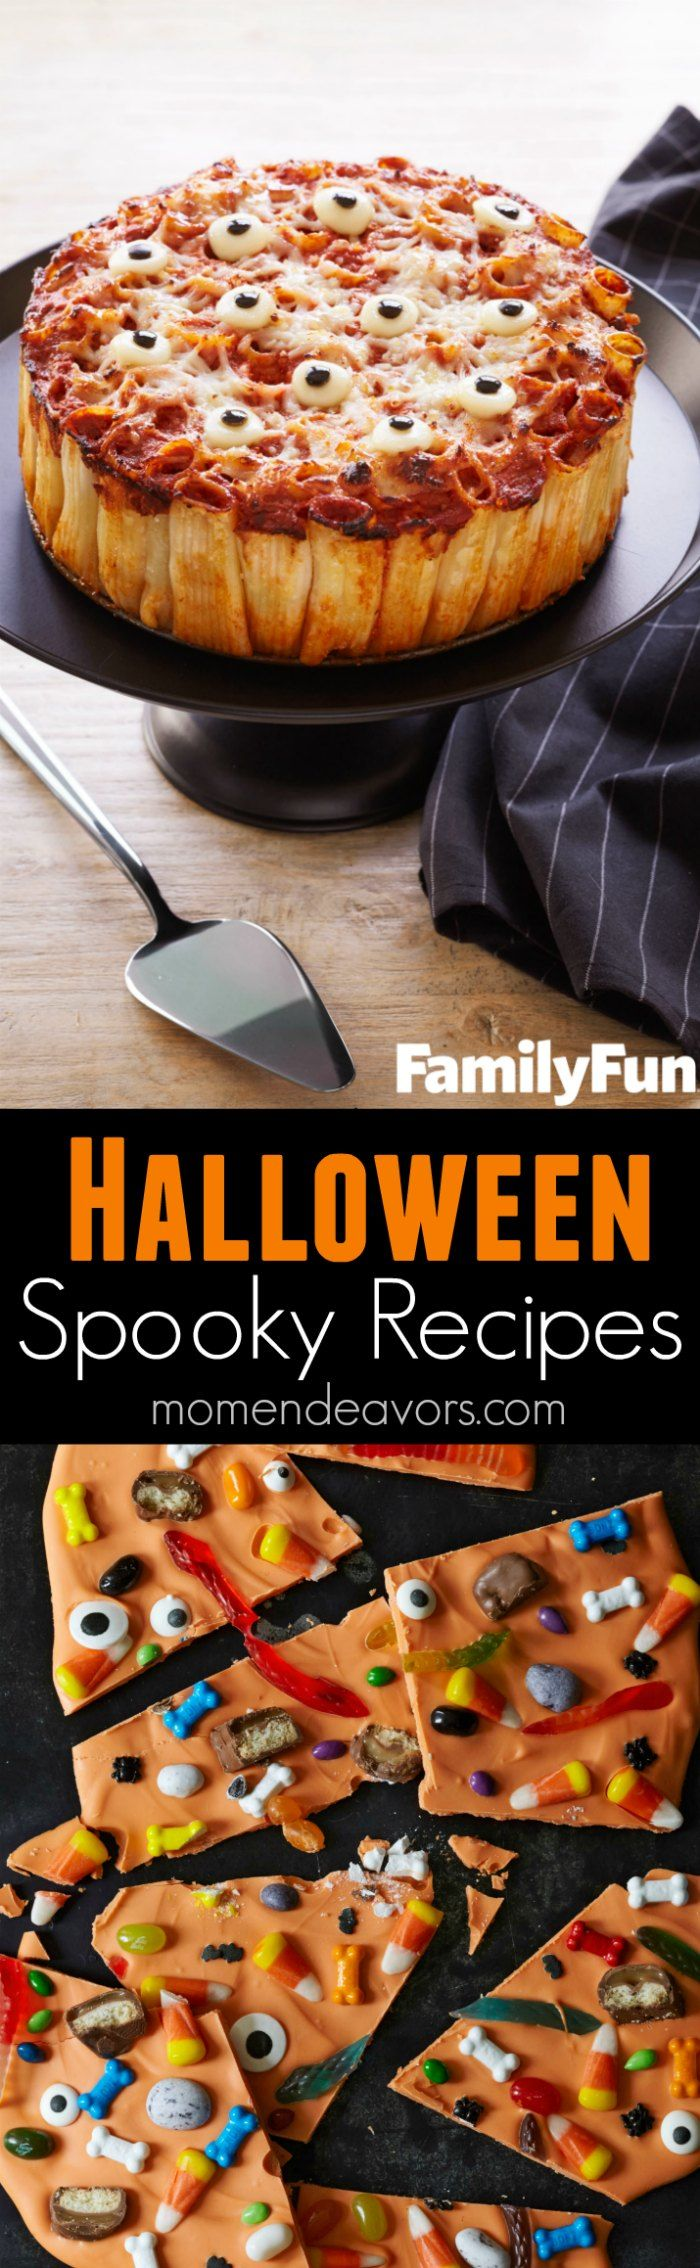 Spooky Halloween Recipes - Halloween punch, Halloween pasta, and ...